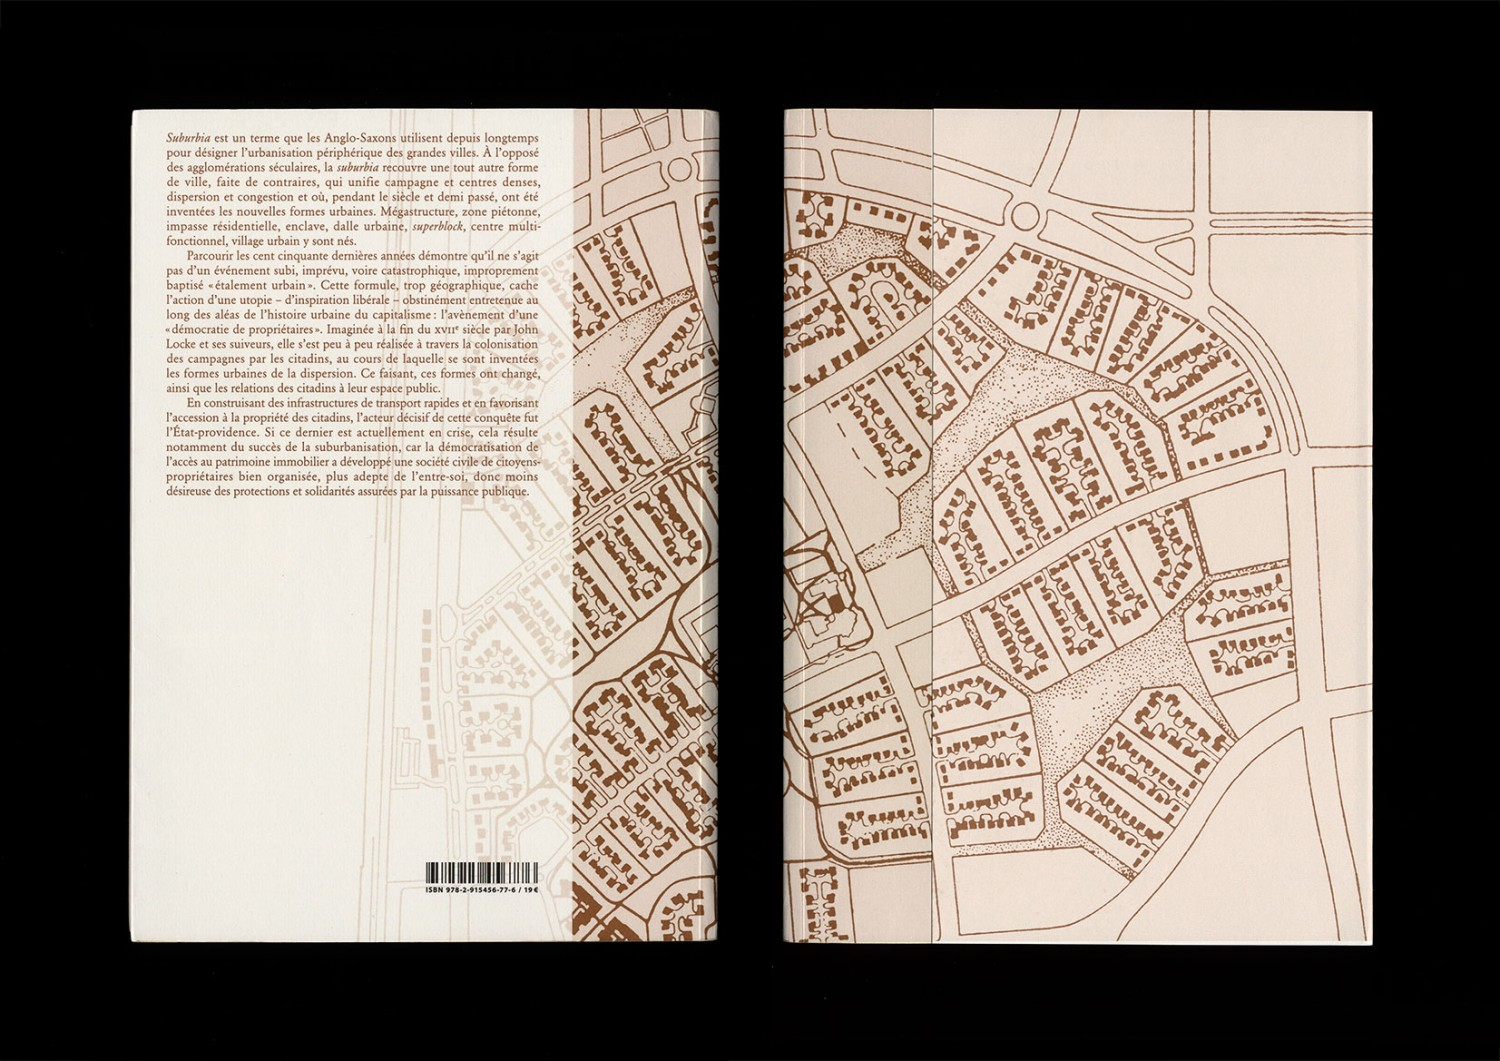 <p><em>Suburbia, une utopie libérale</em>, Jean Taricat, Collection : Etudes et perspectives. Photo © Building Paris.</p>